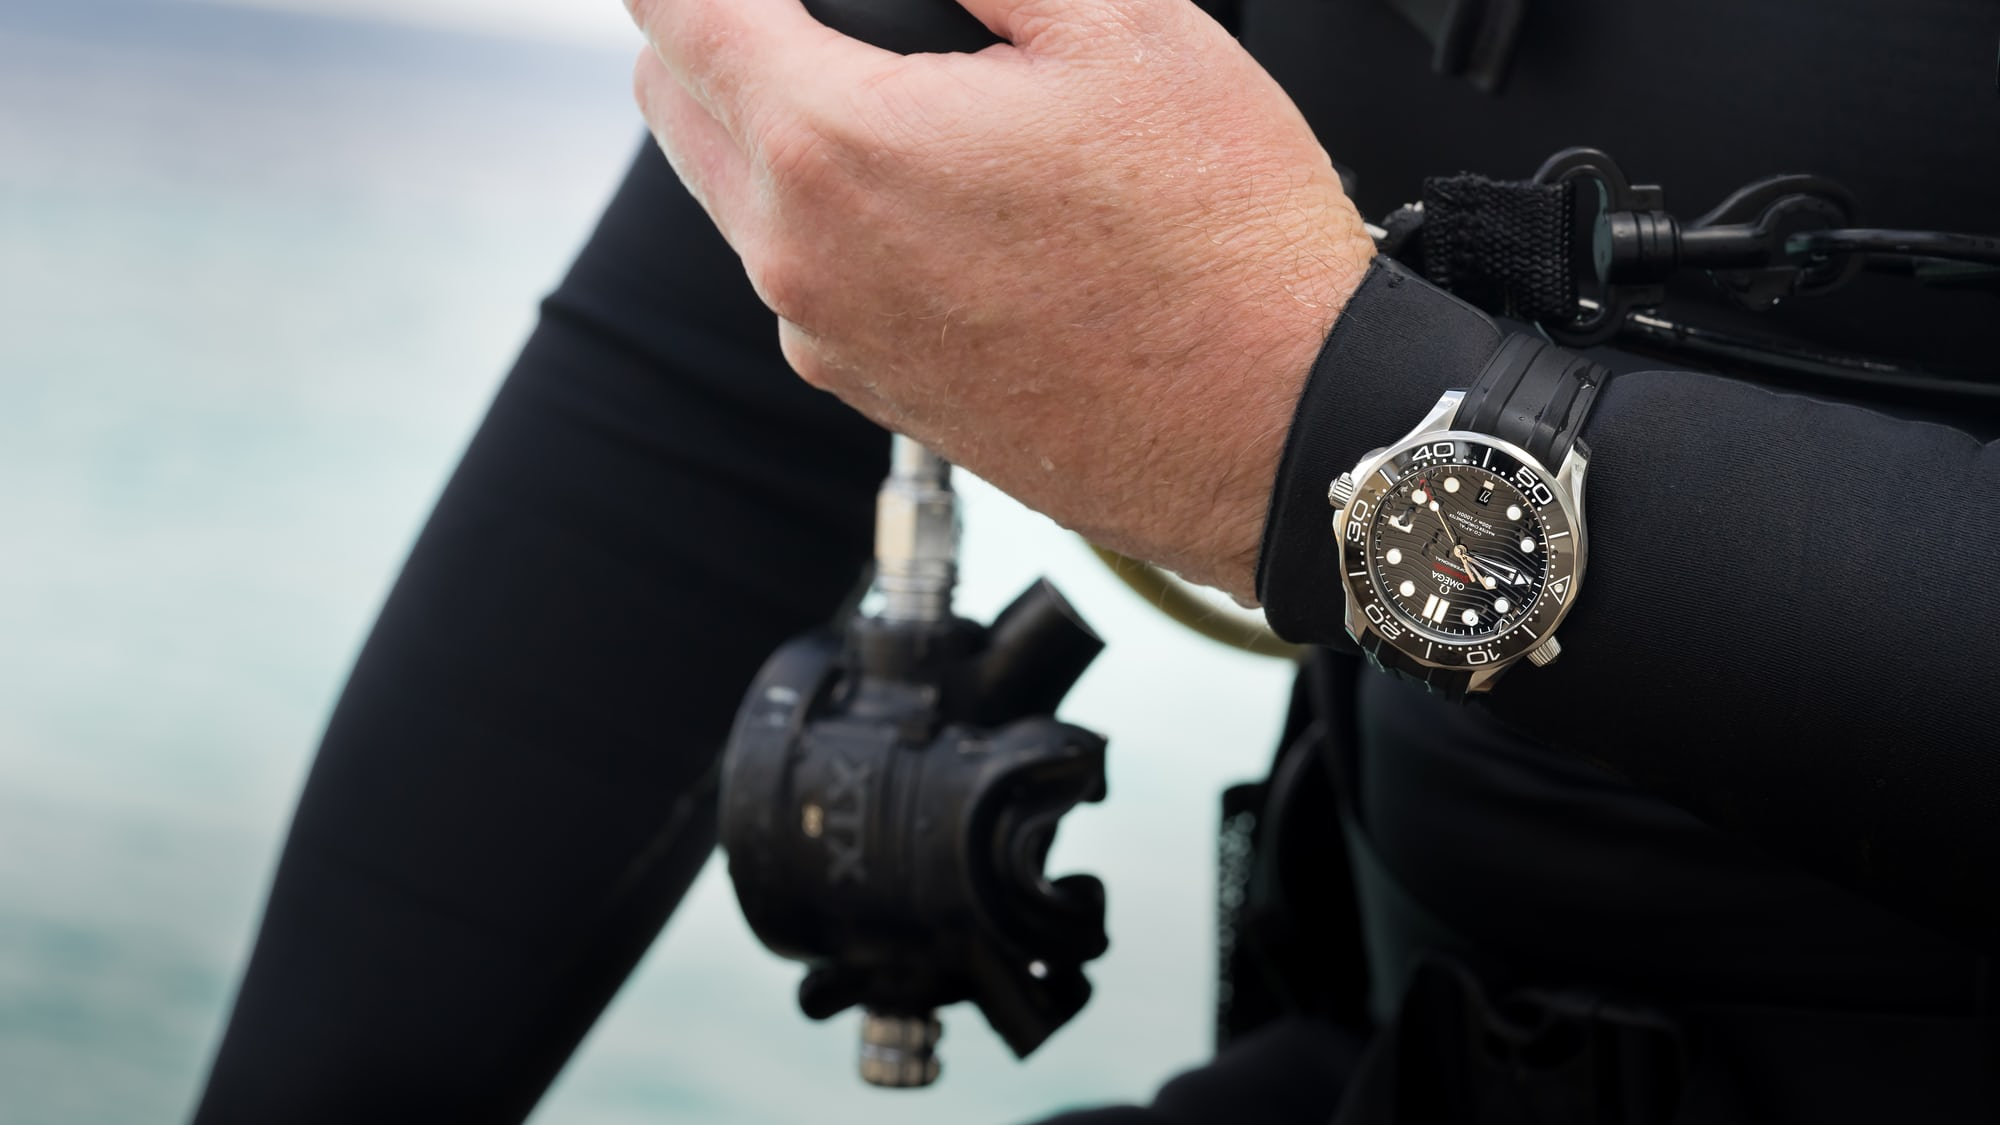 In-Depth: Diving With The Omega Seamaster Professional 300M SM300 pro 1